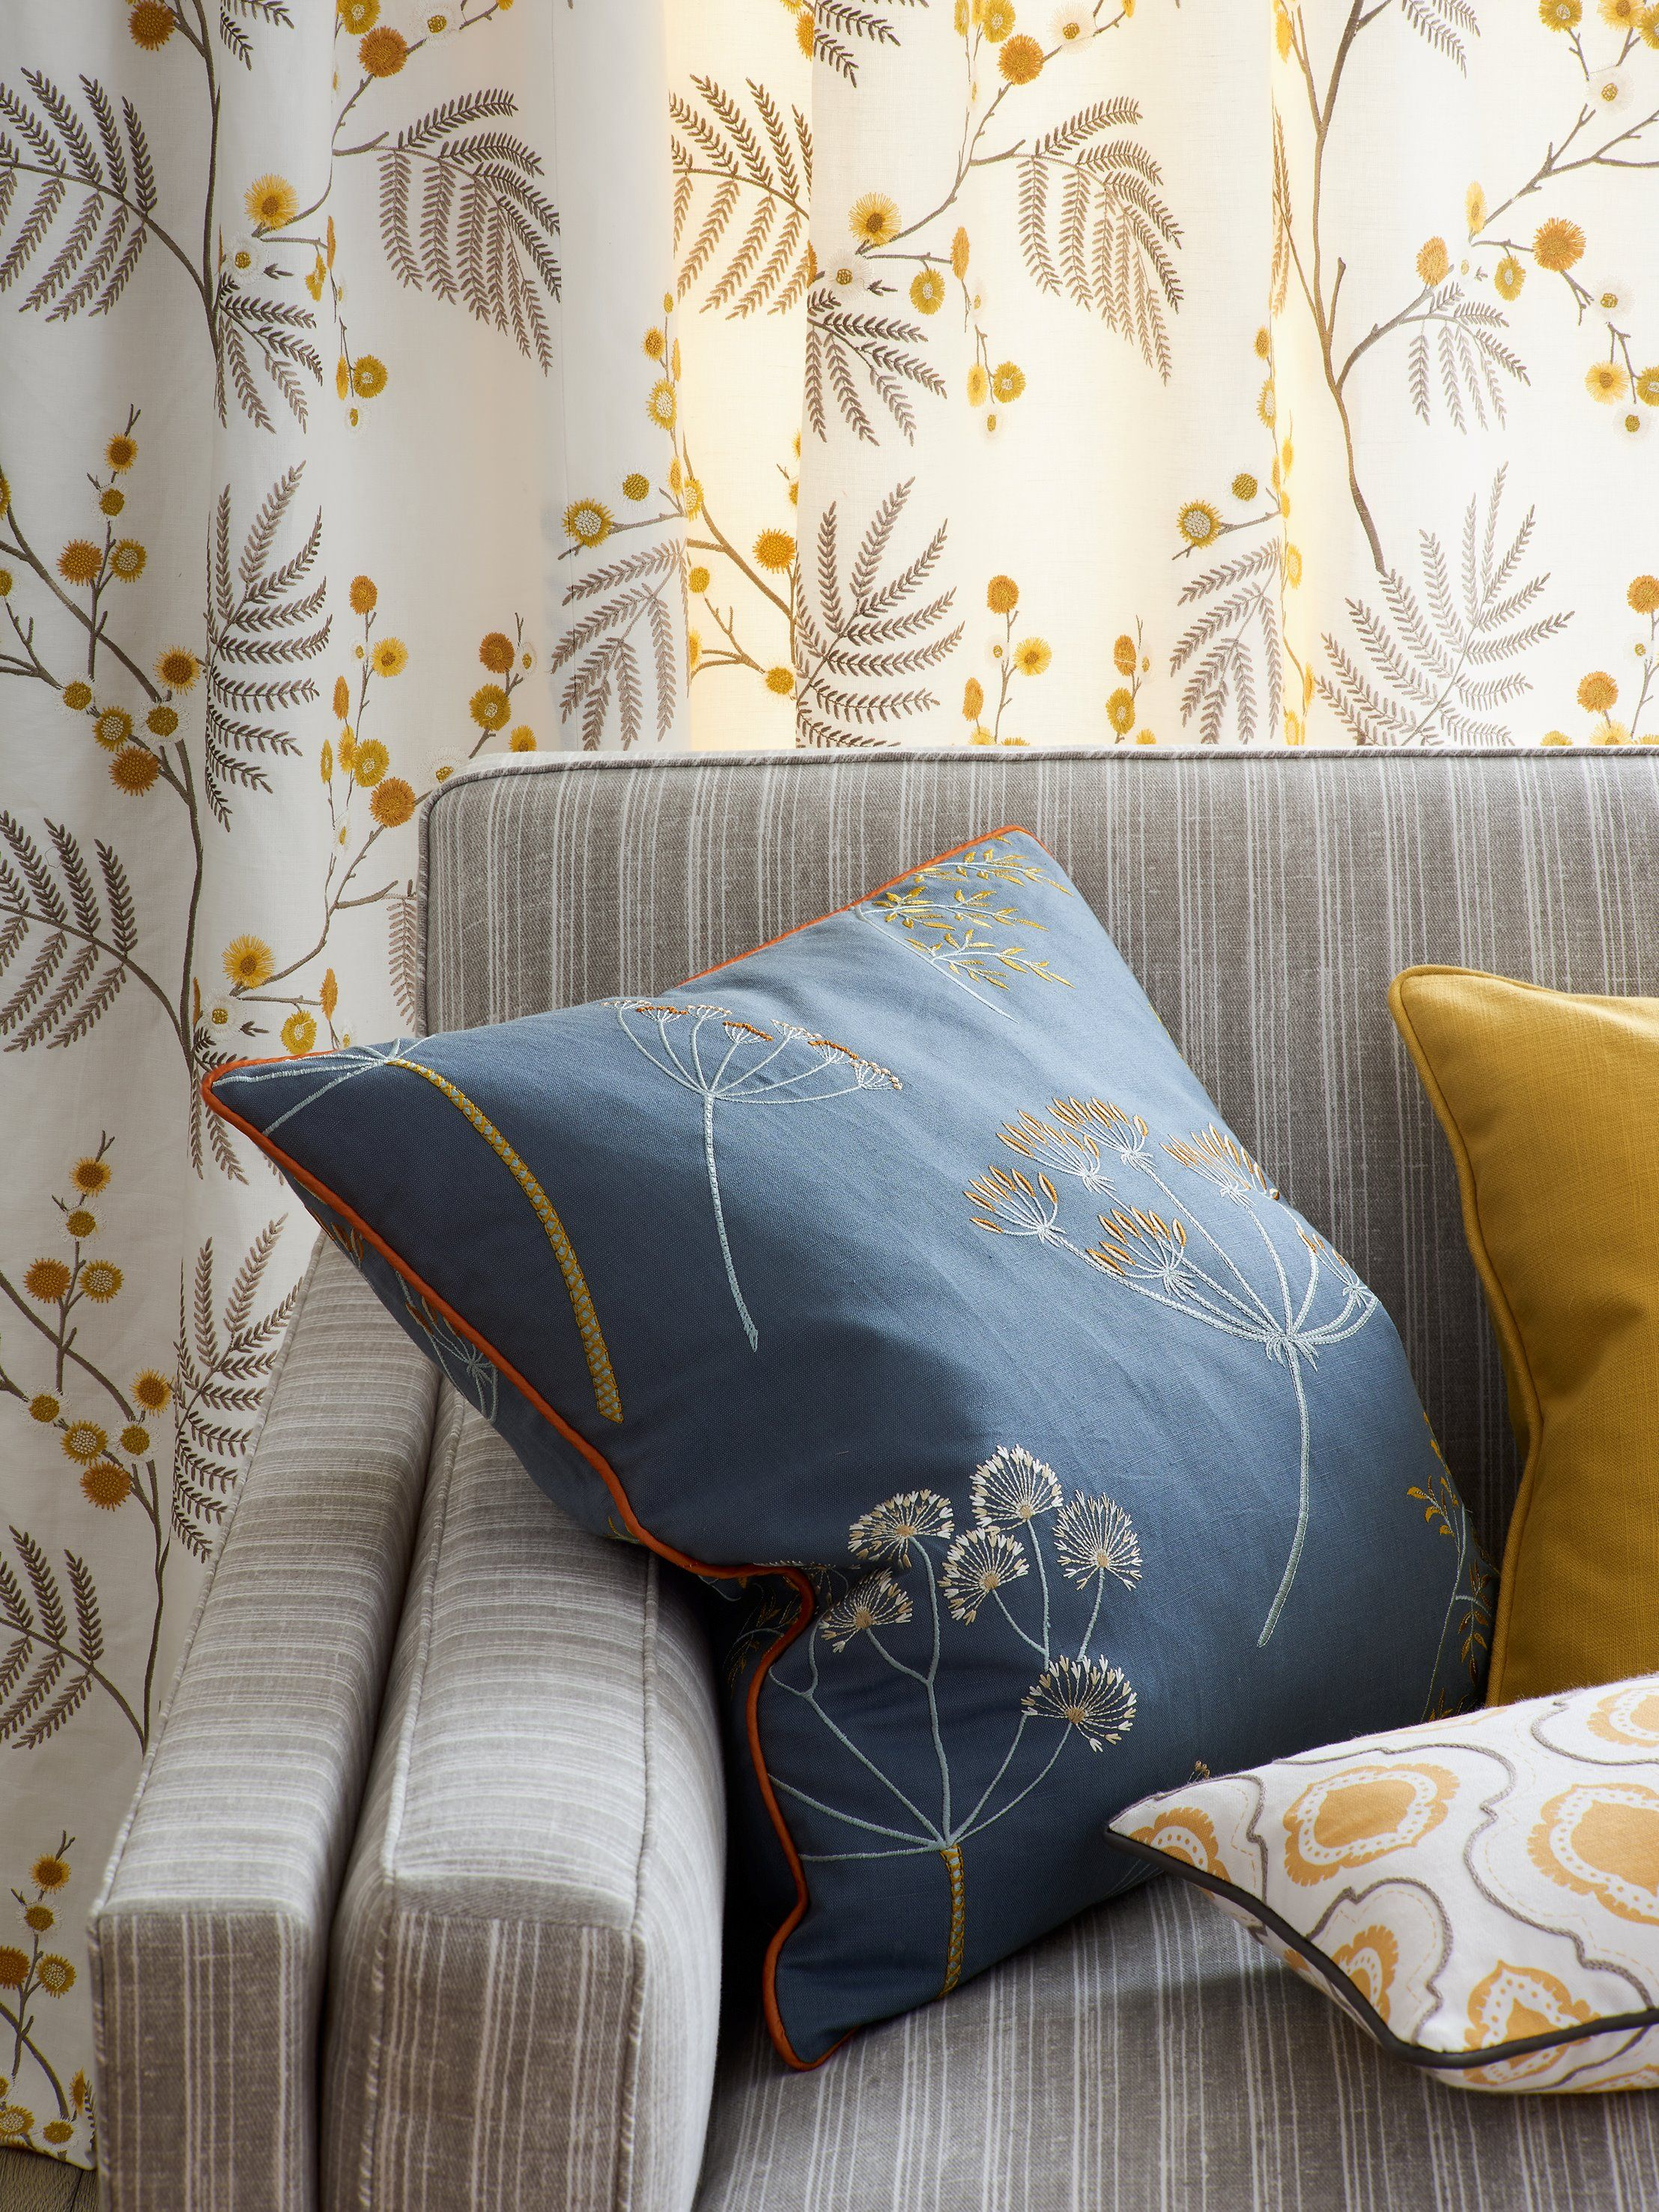 Fabrics from the blakewater collection by jane churchill